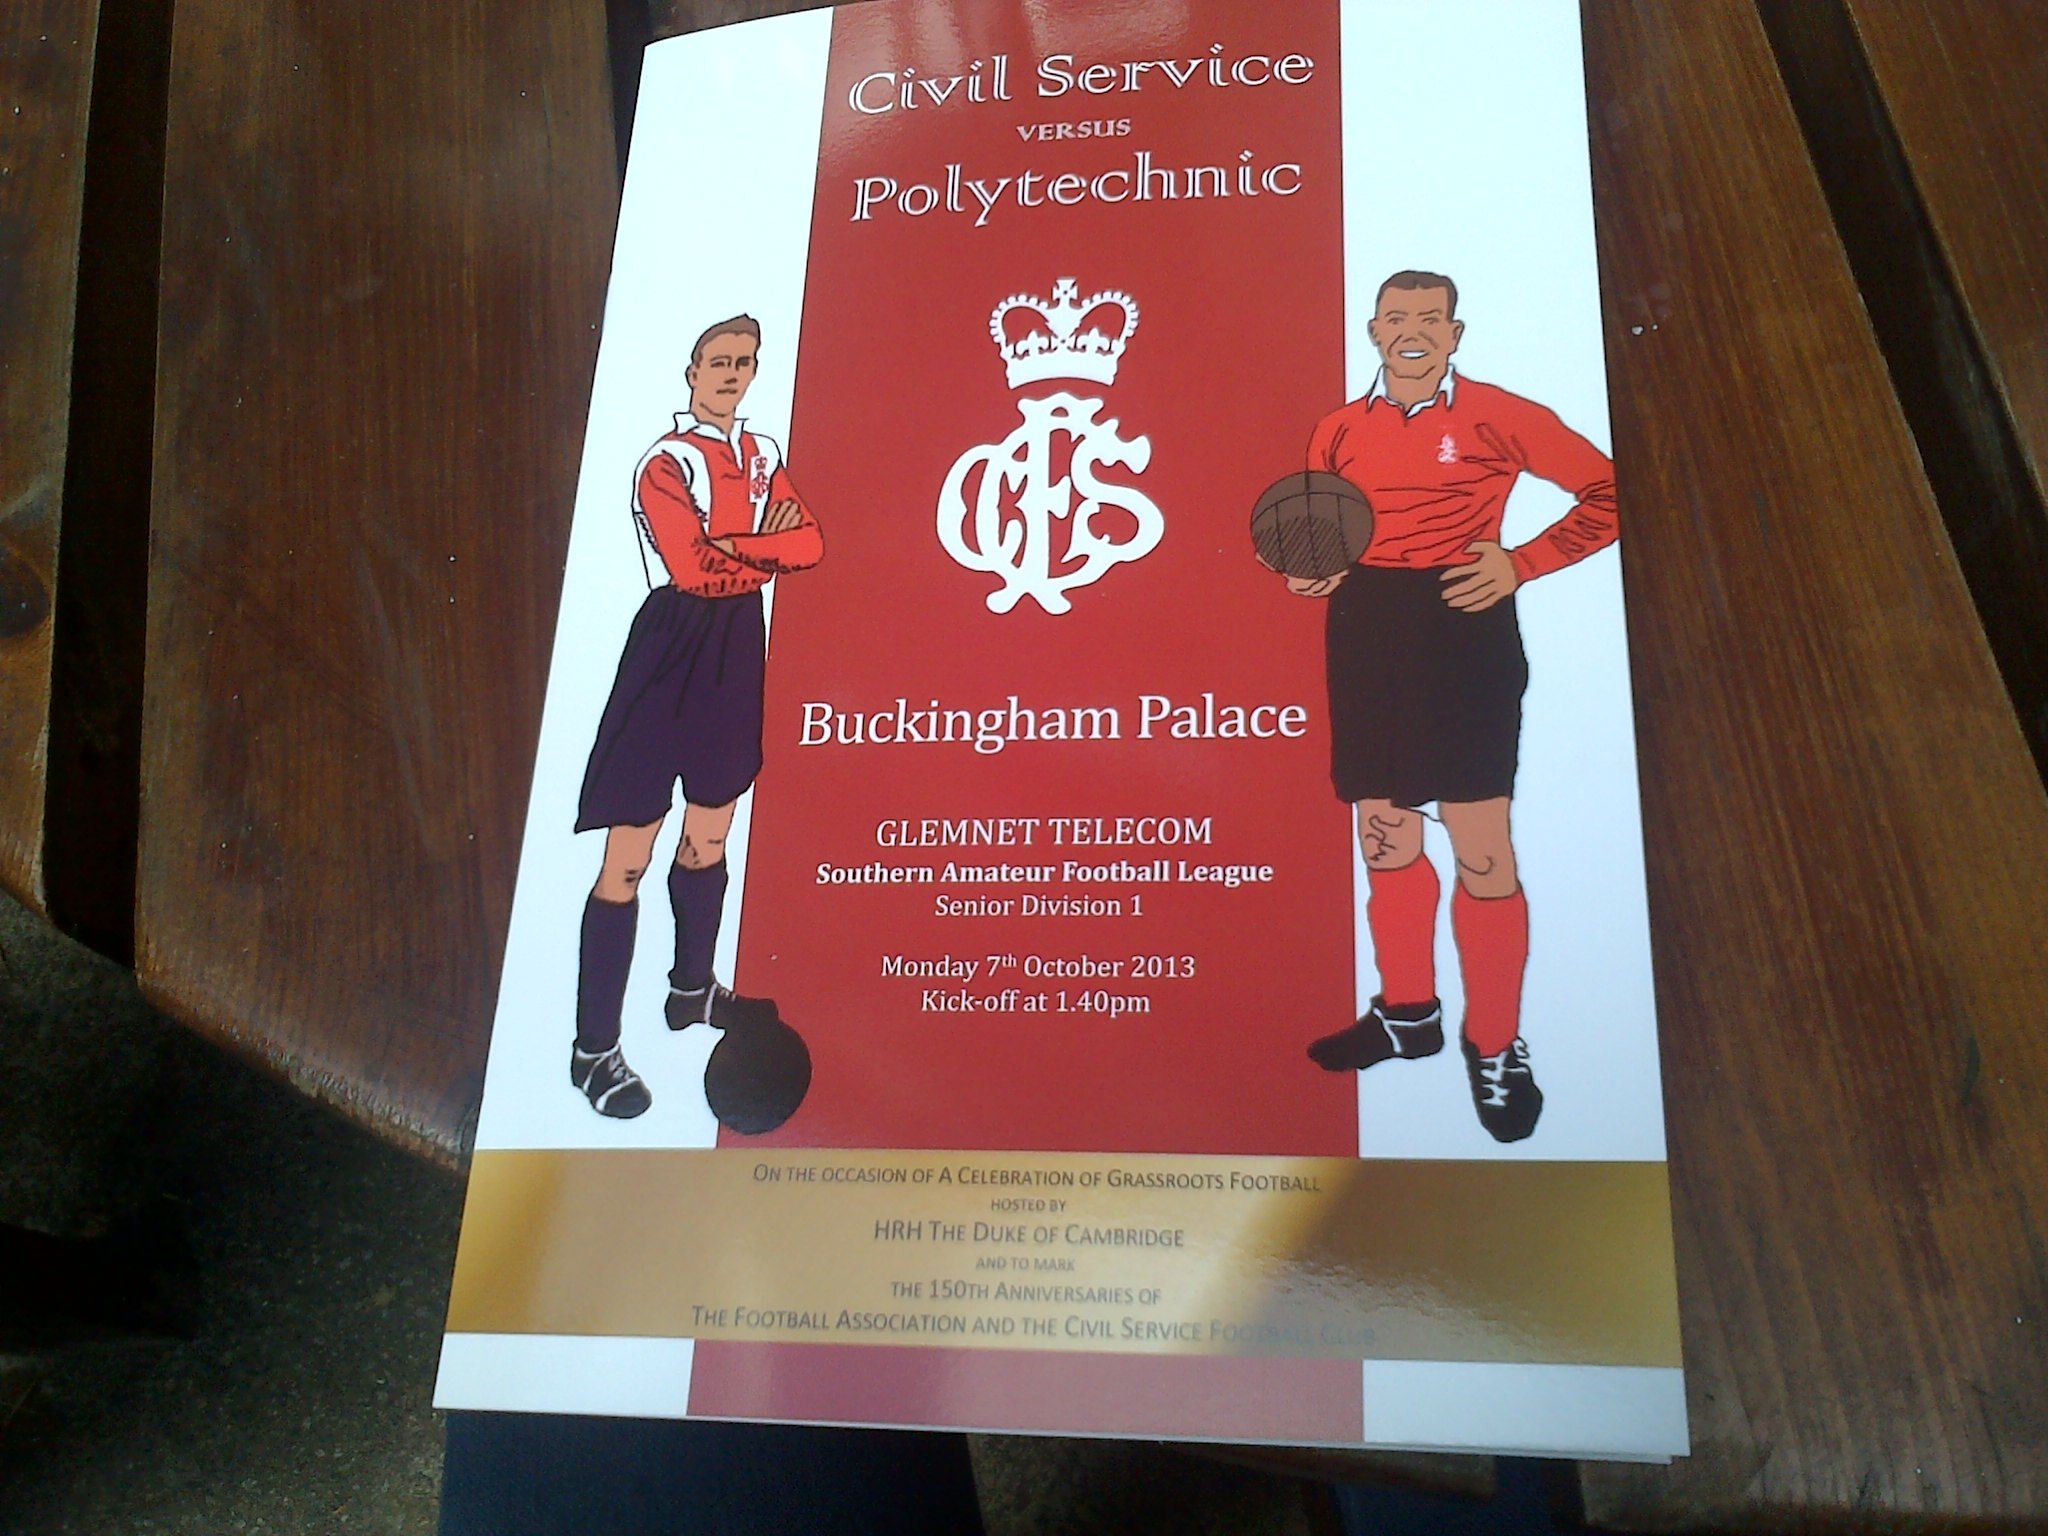 Match day programme - Fooball at Buckingham Palace